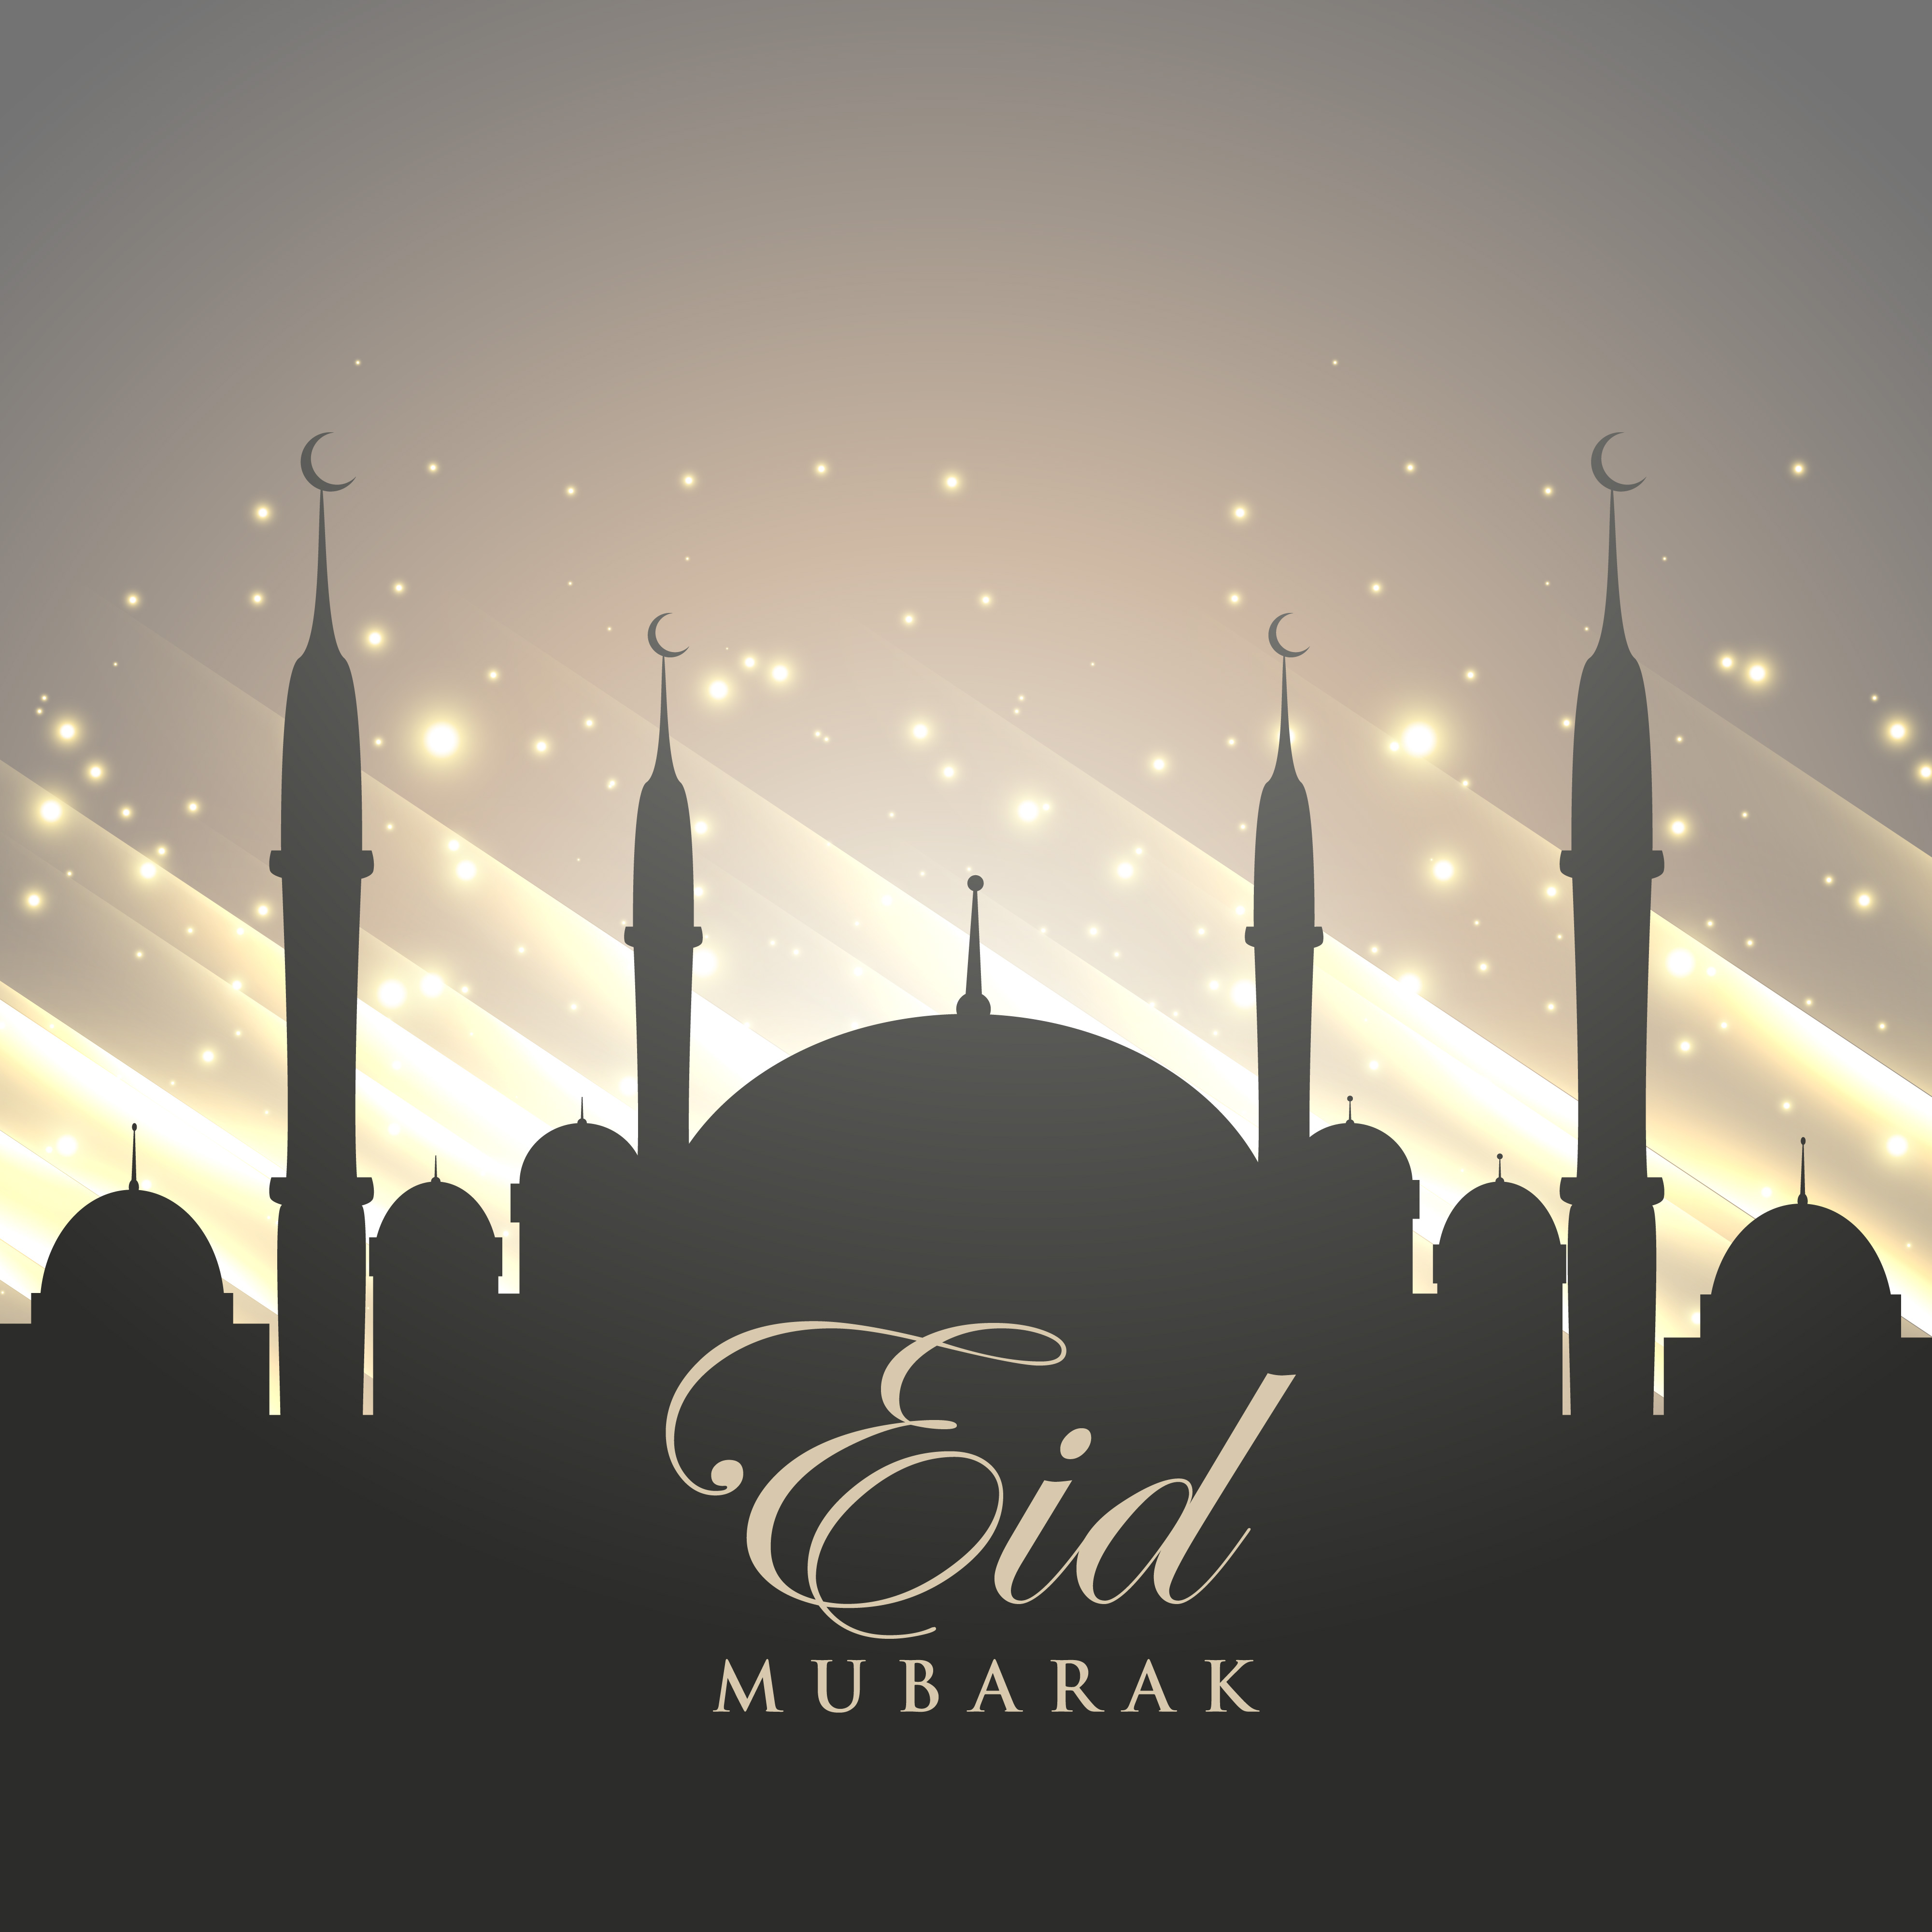 Islamic Eid Festival Greeting With Mosque Silhouette And